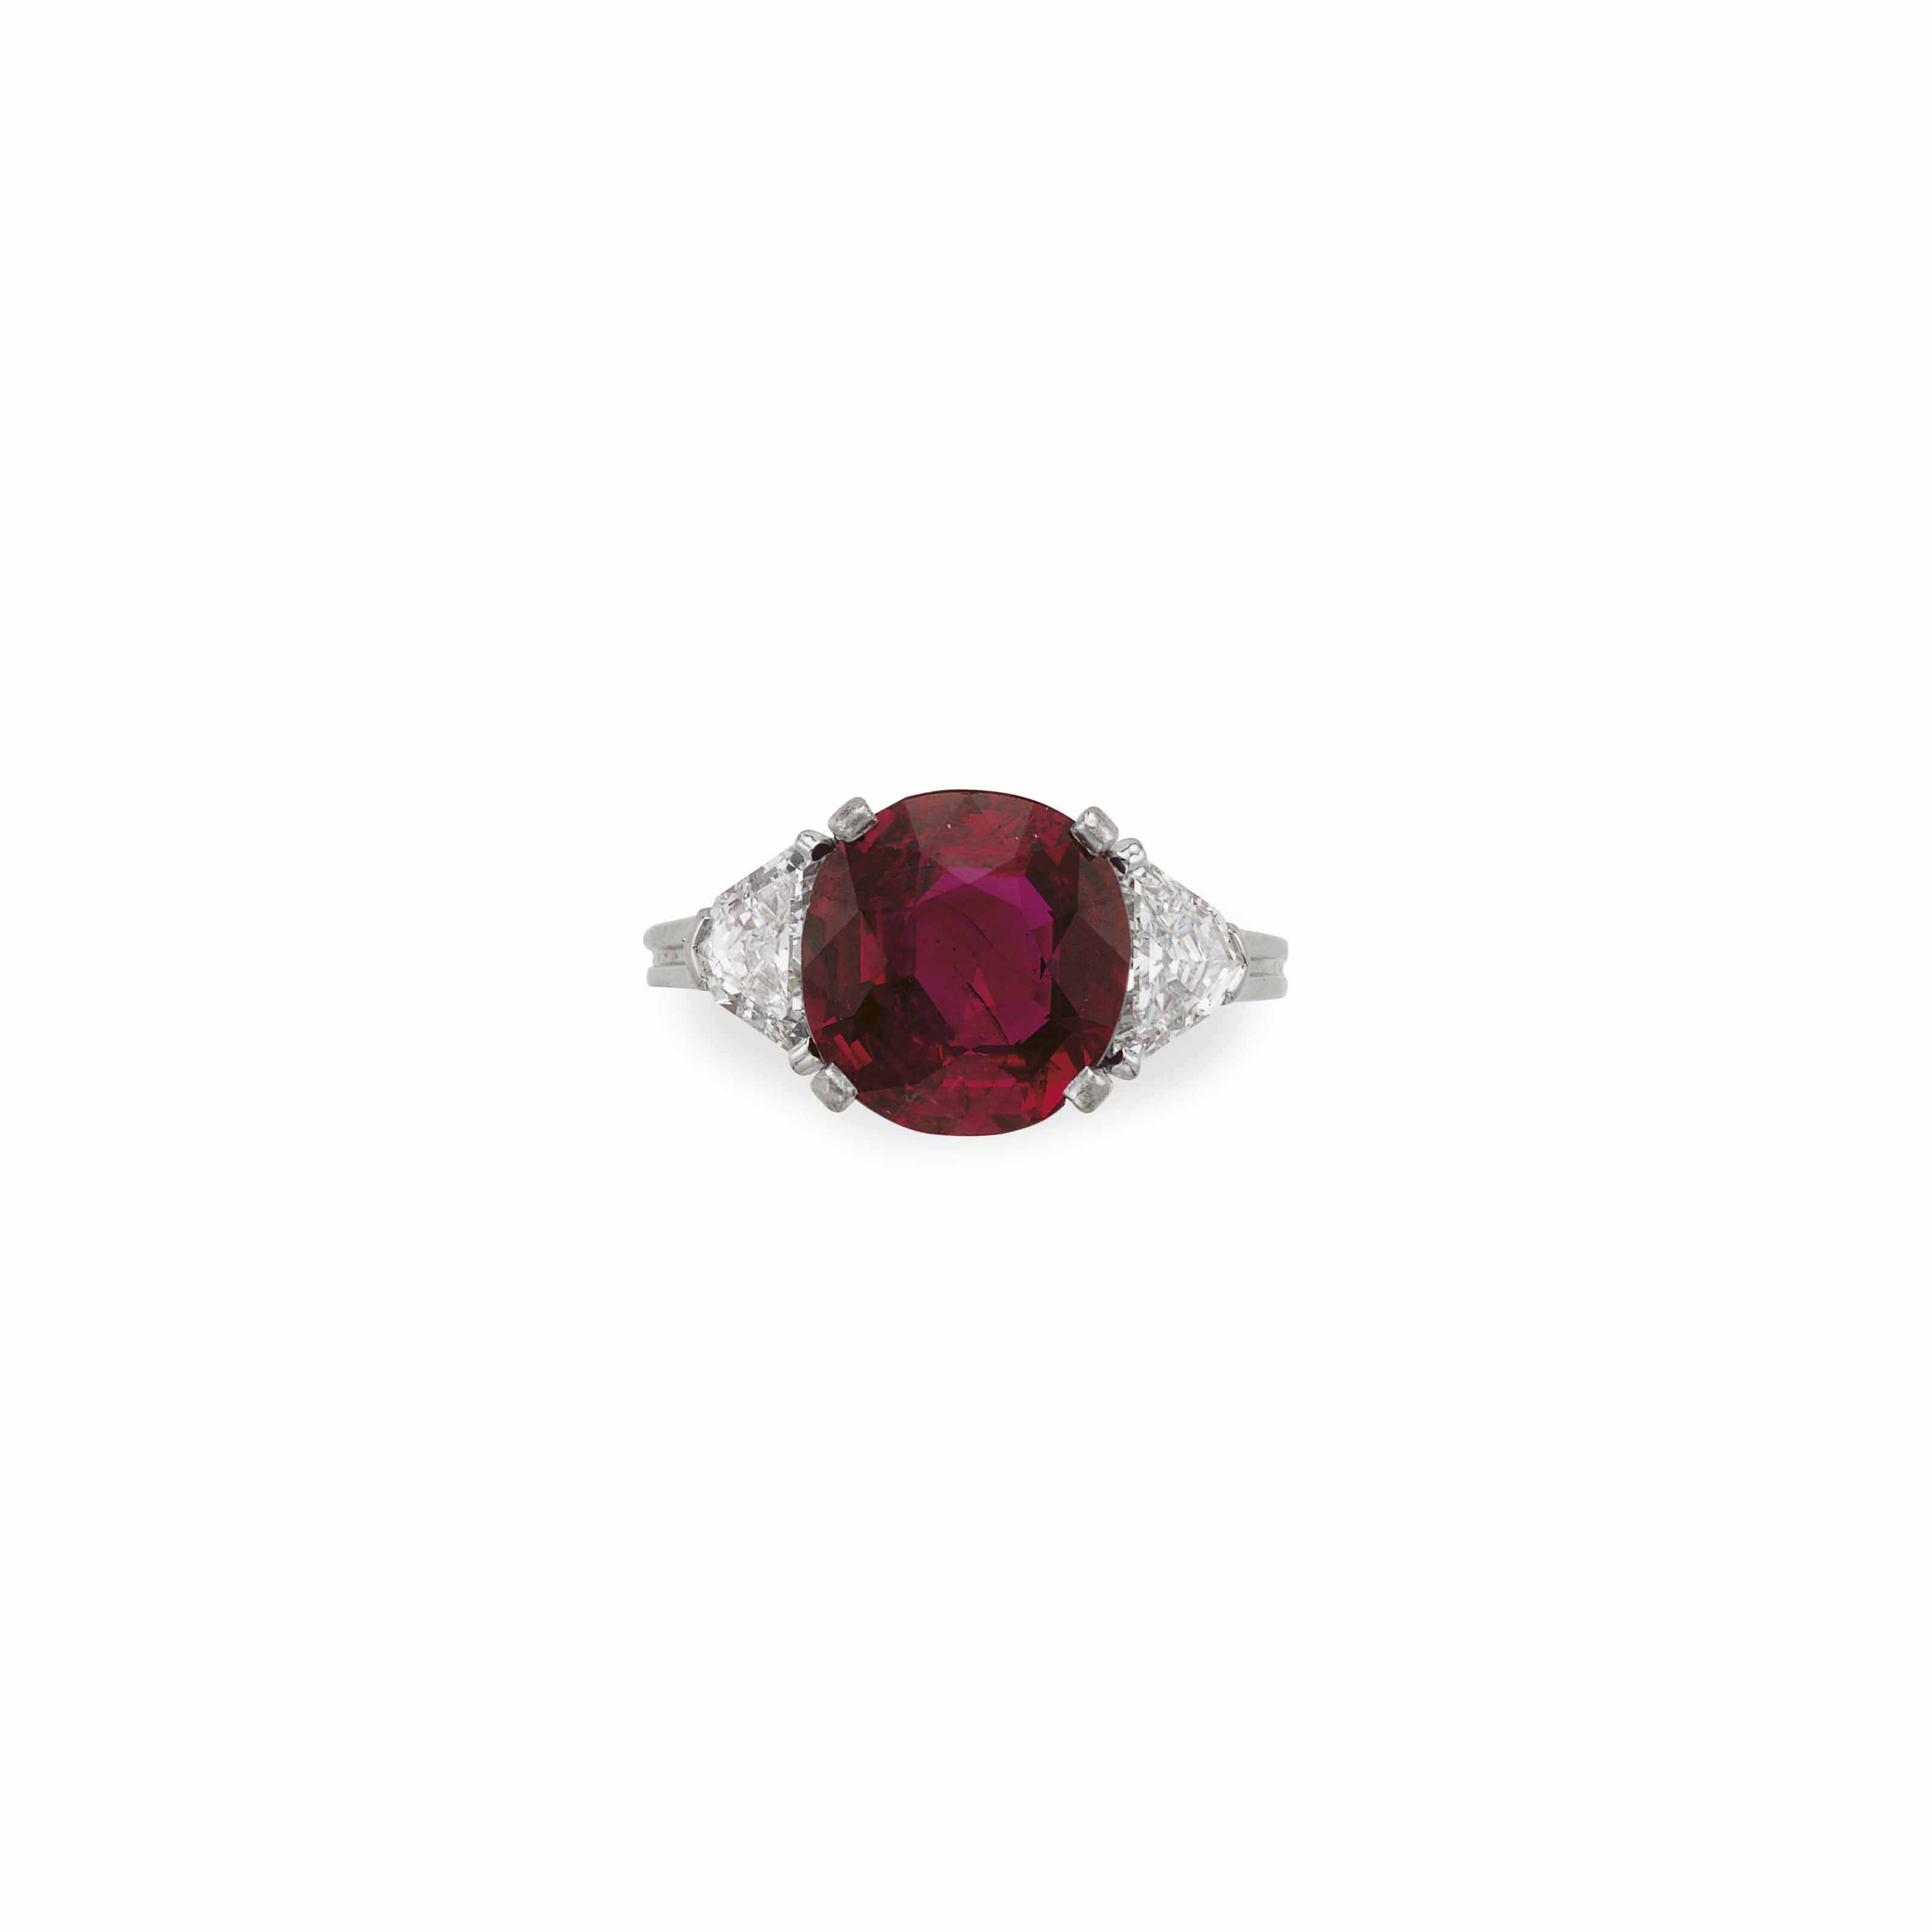 THE BERLIN RUBY A RUBY AND DIAMOND RING, BY TIFFANY & CO.